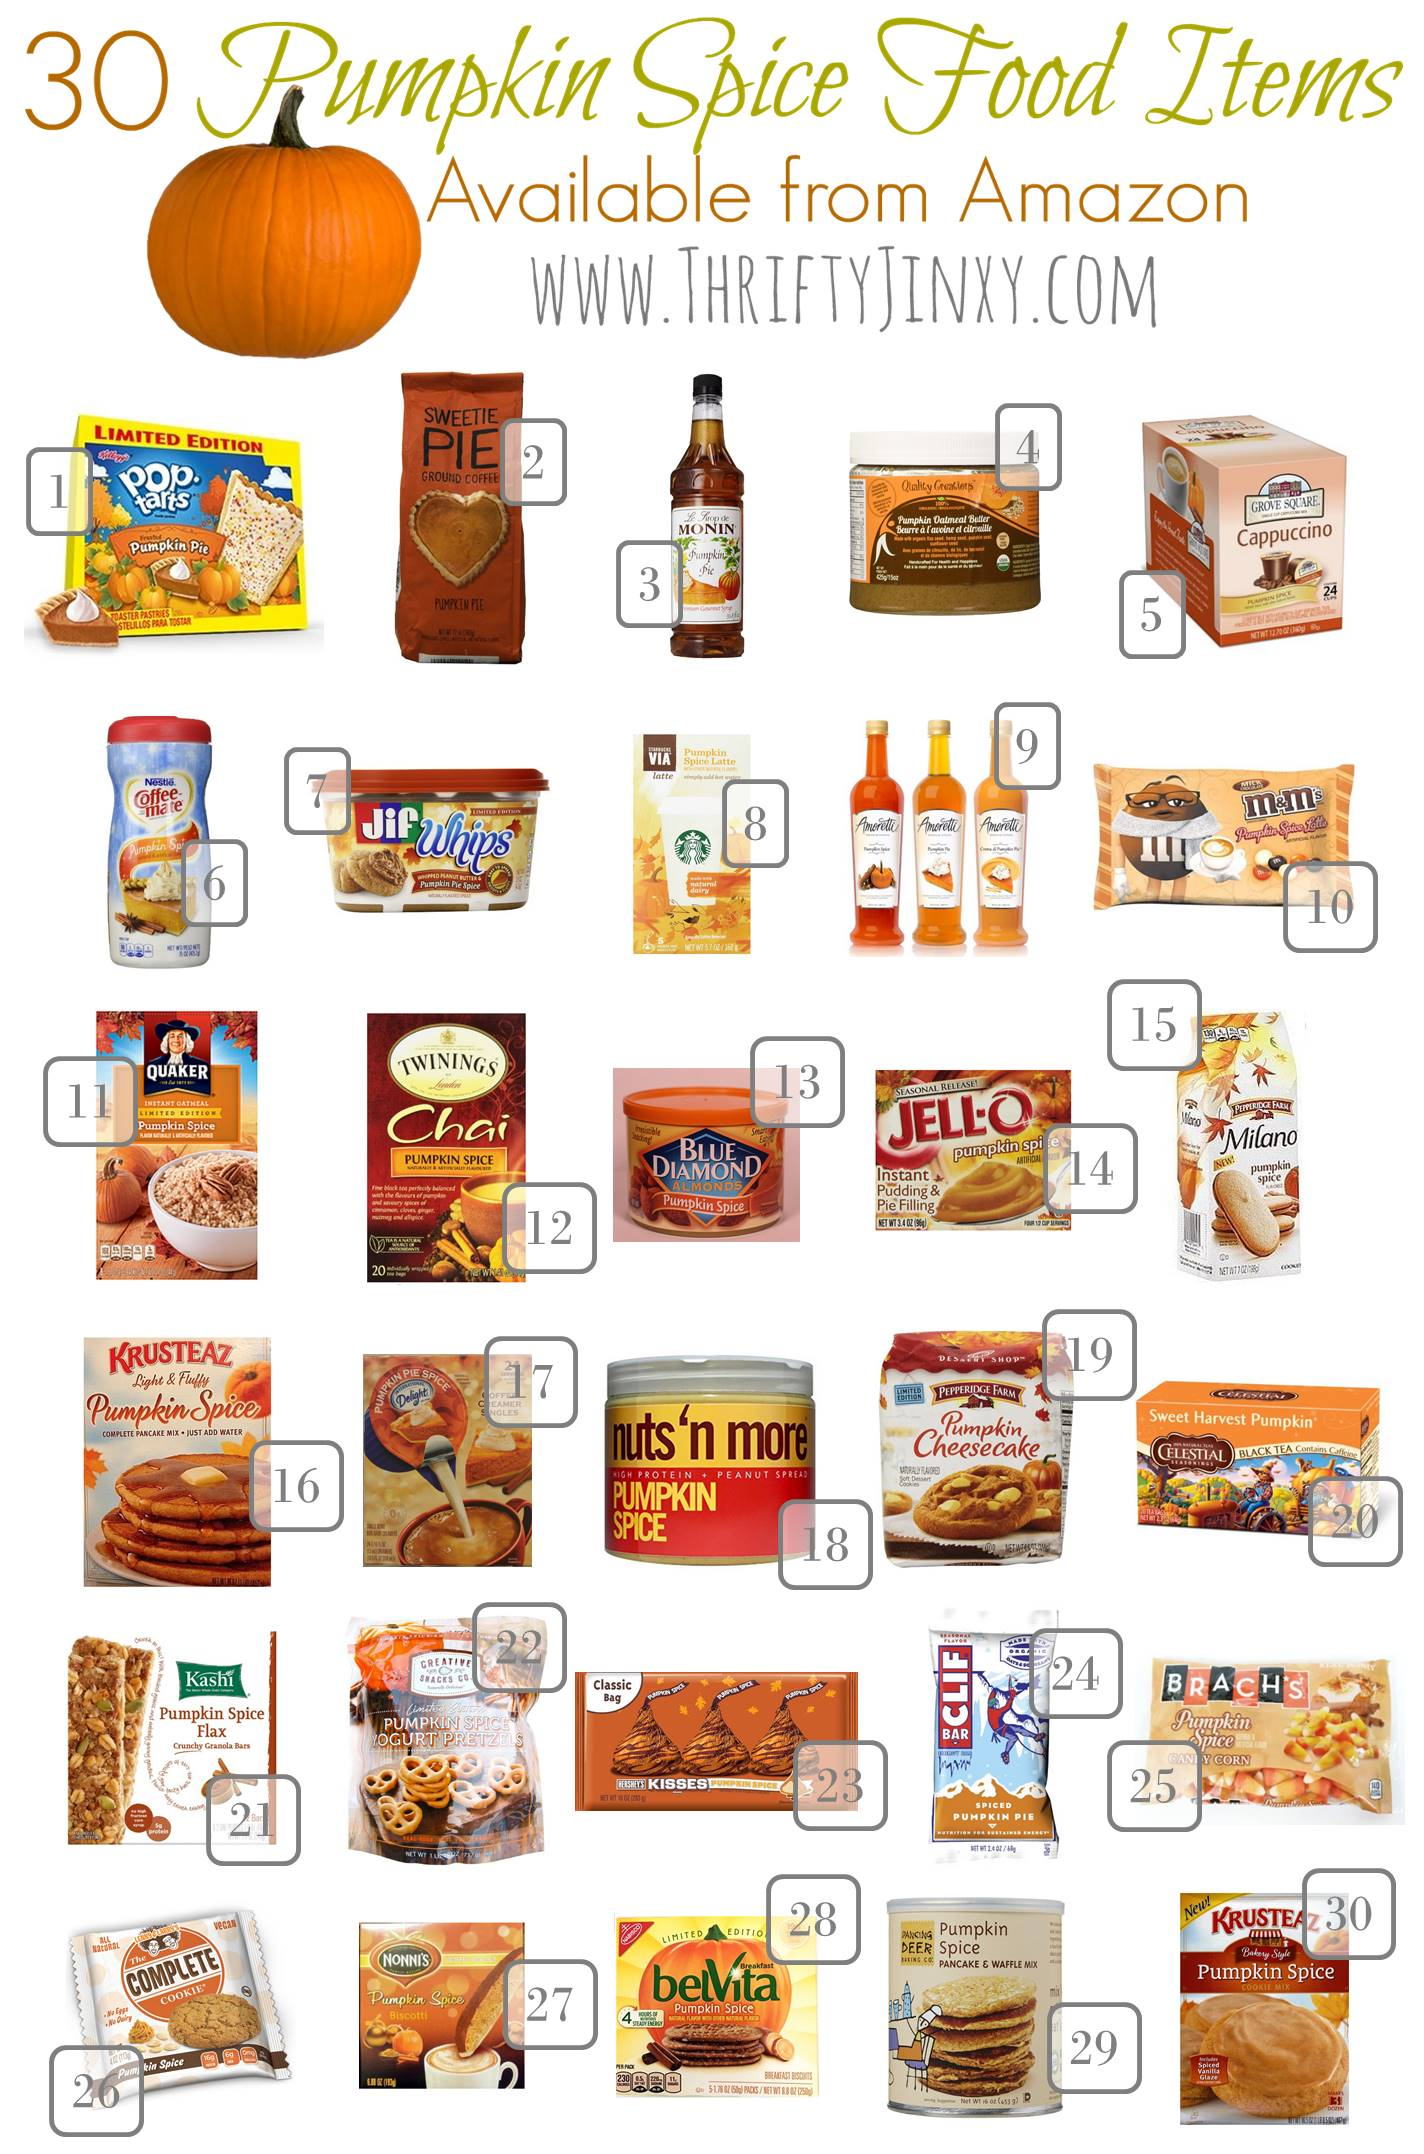 30 Pumpkin Spice Food Items Perfect for Fall